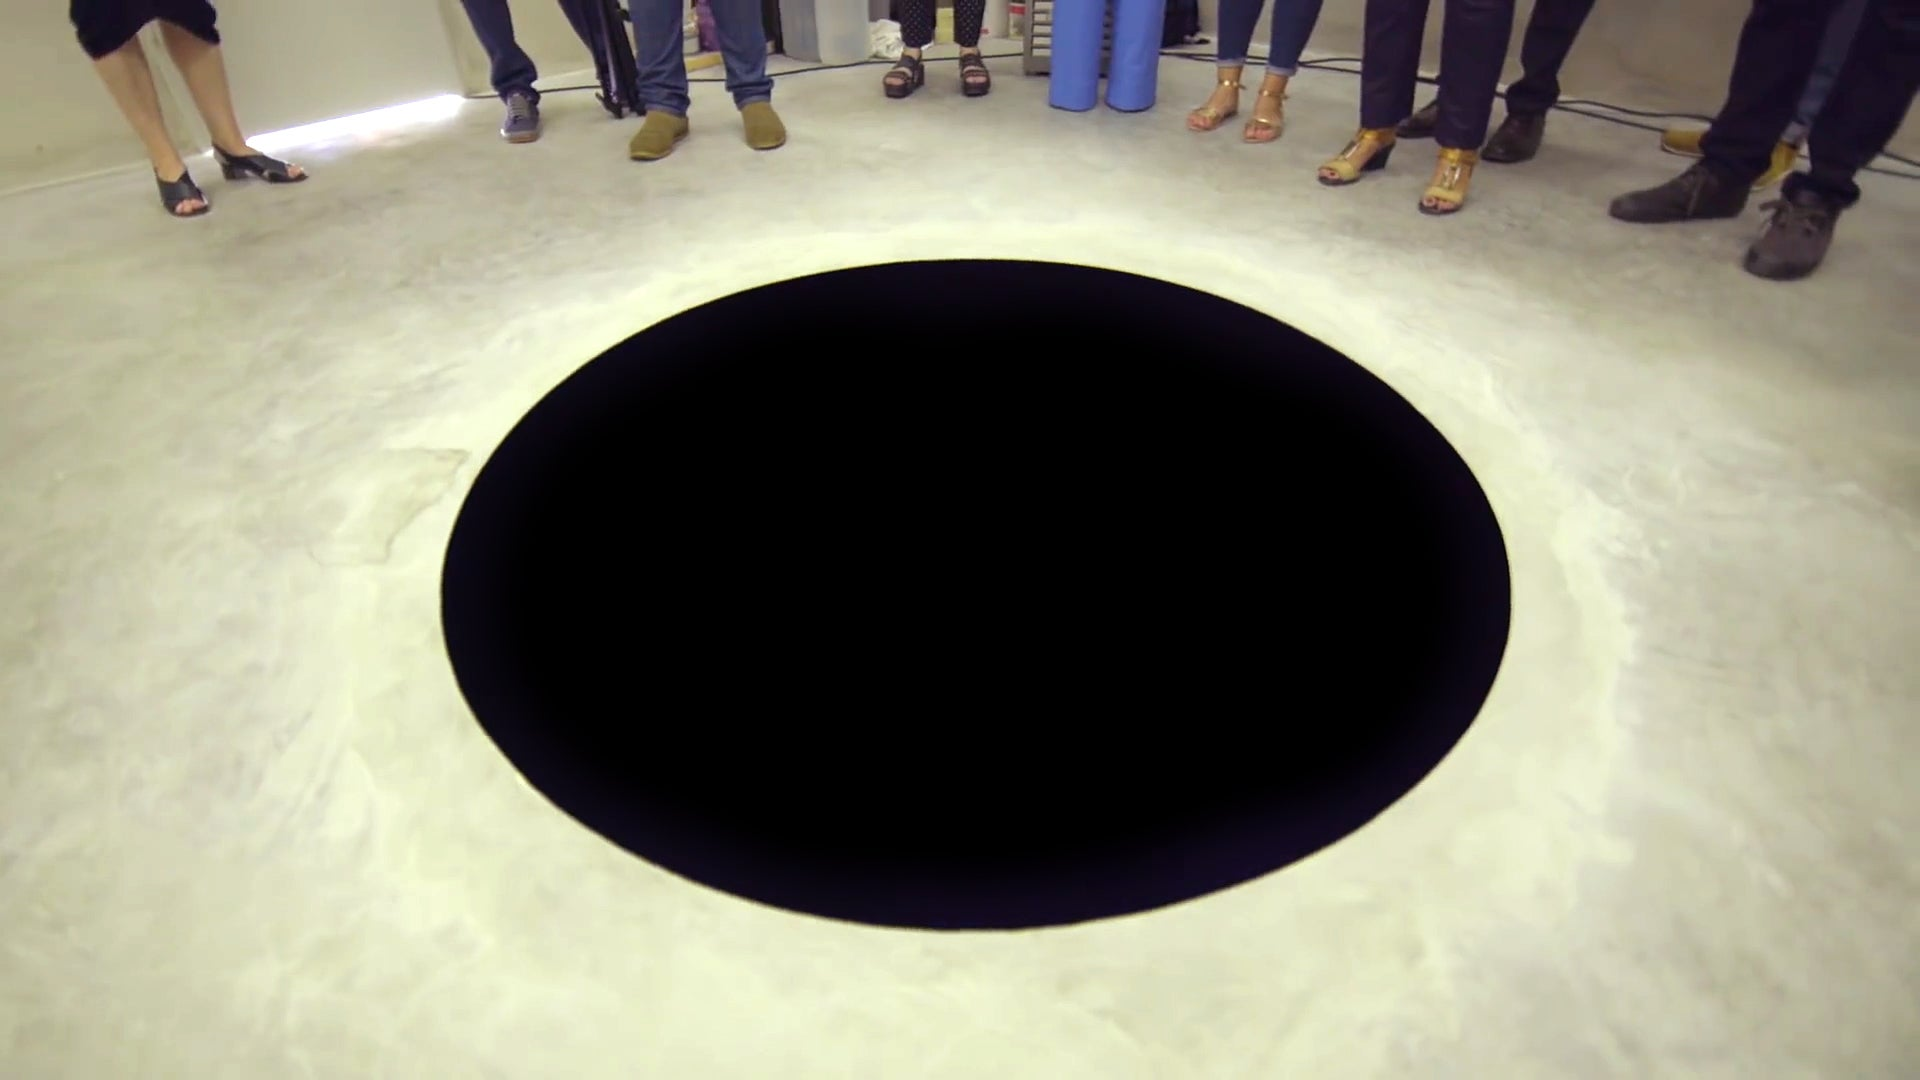 anish-kapoor art descent-into-limbo serralves-museum surrey-nanosystems vantablack